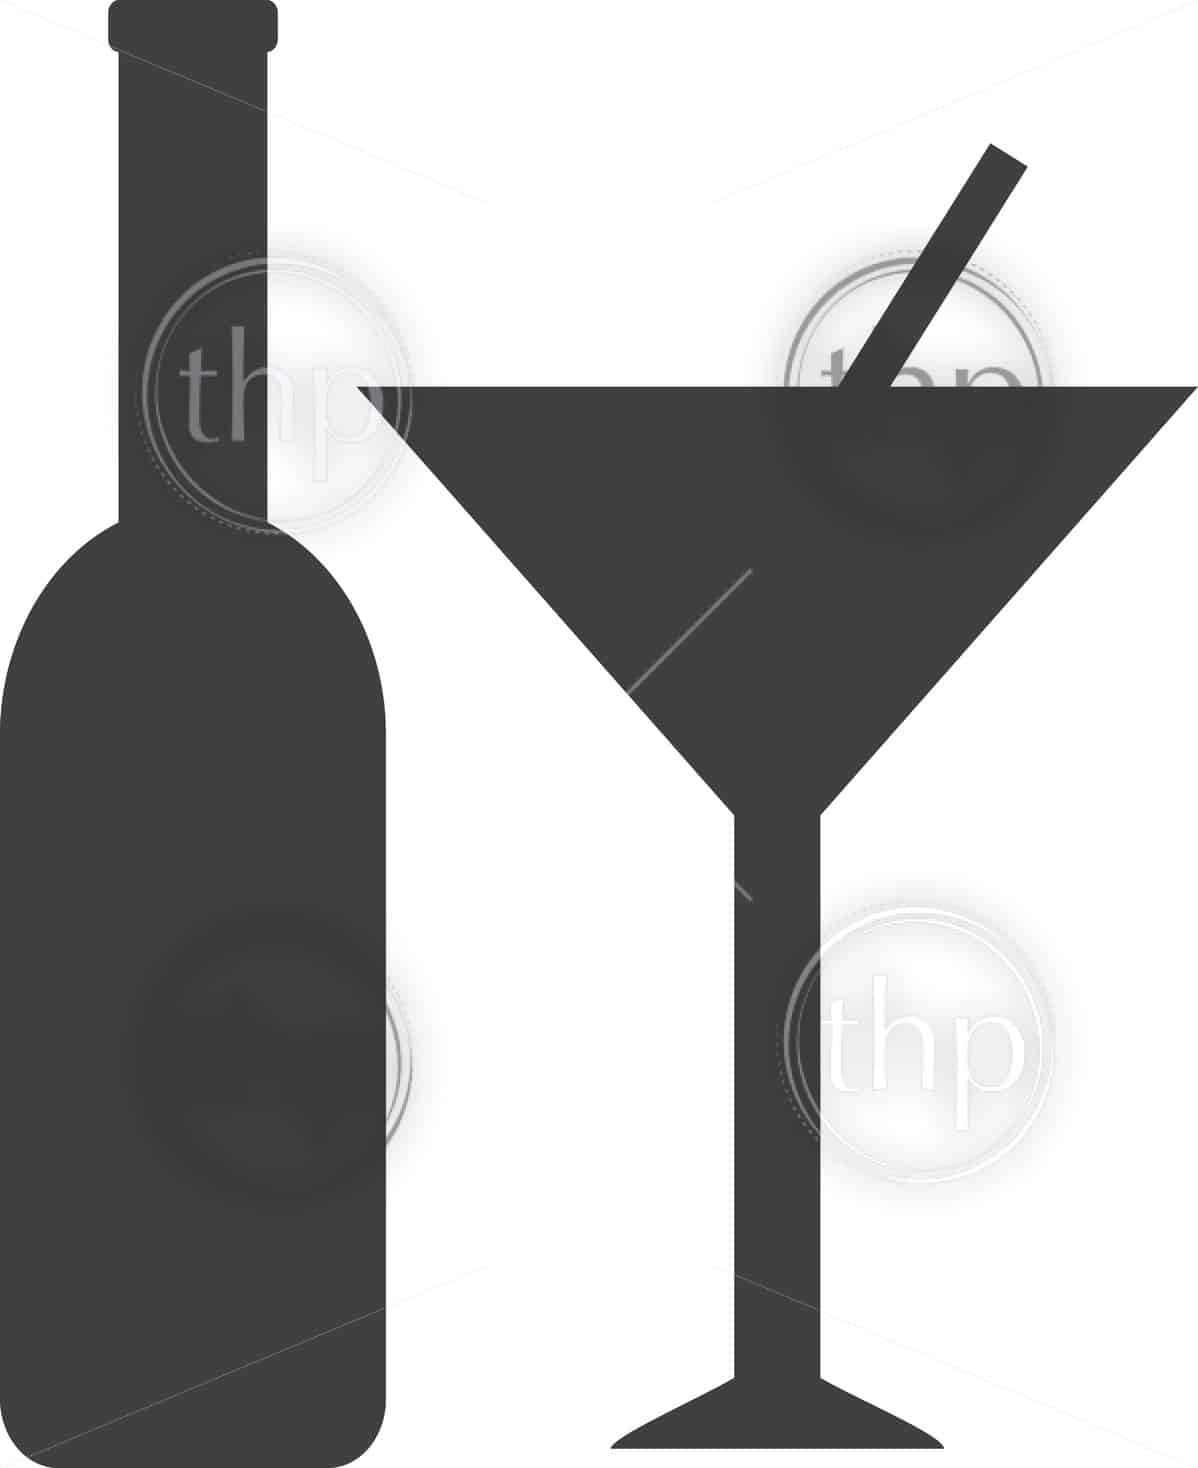 Alcohol icon in simple vector style